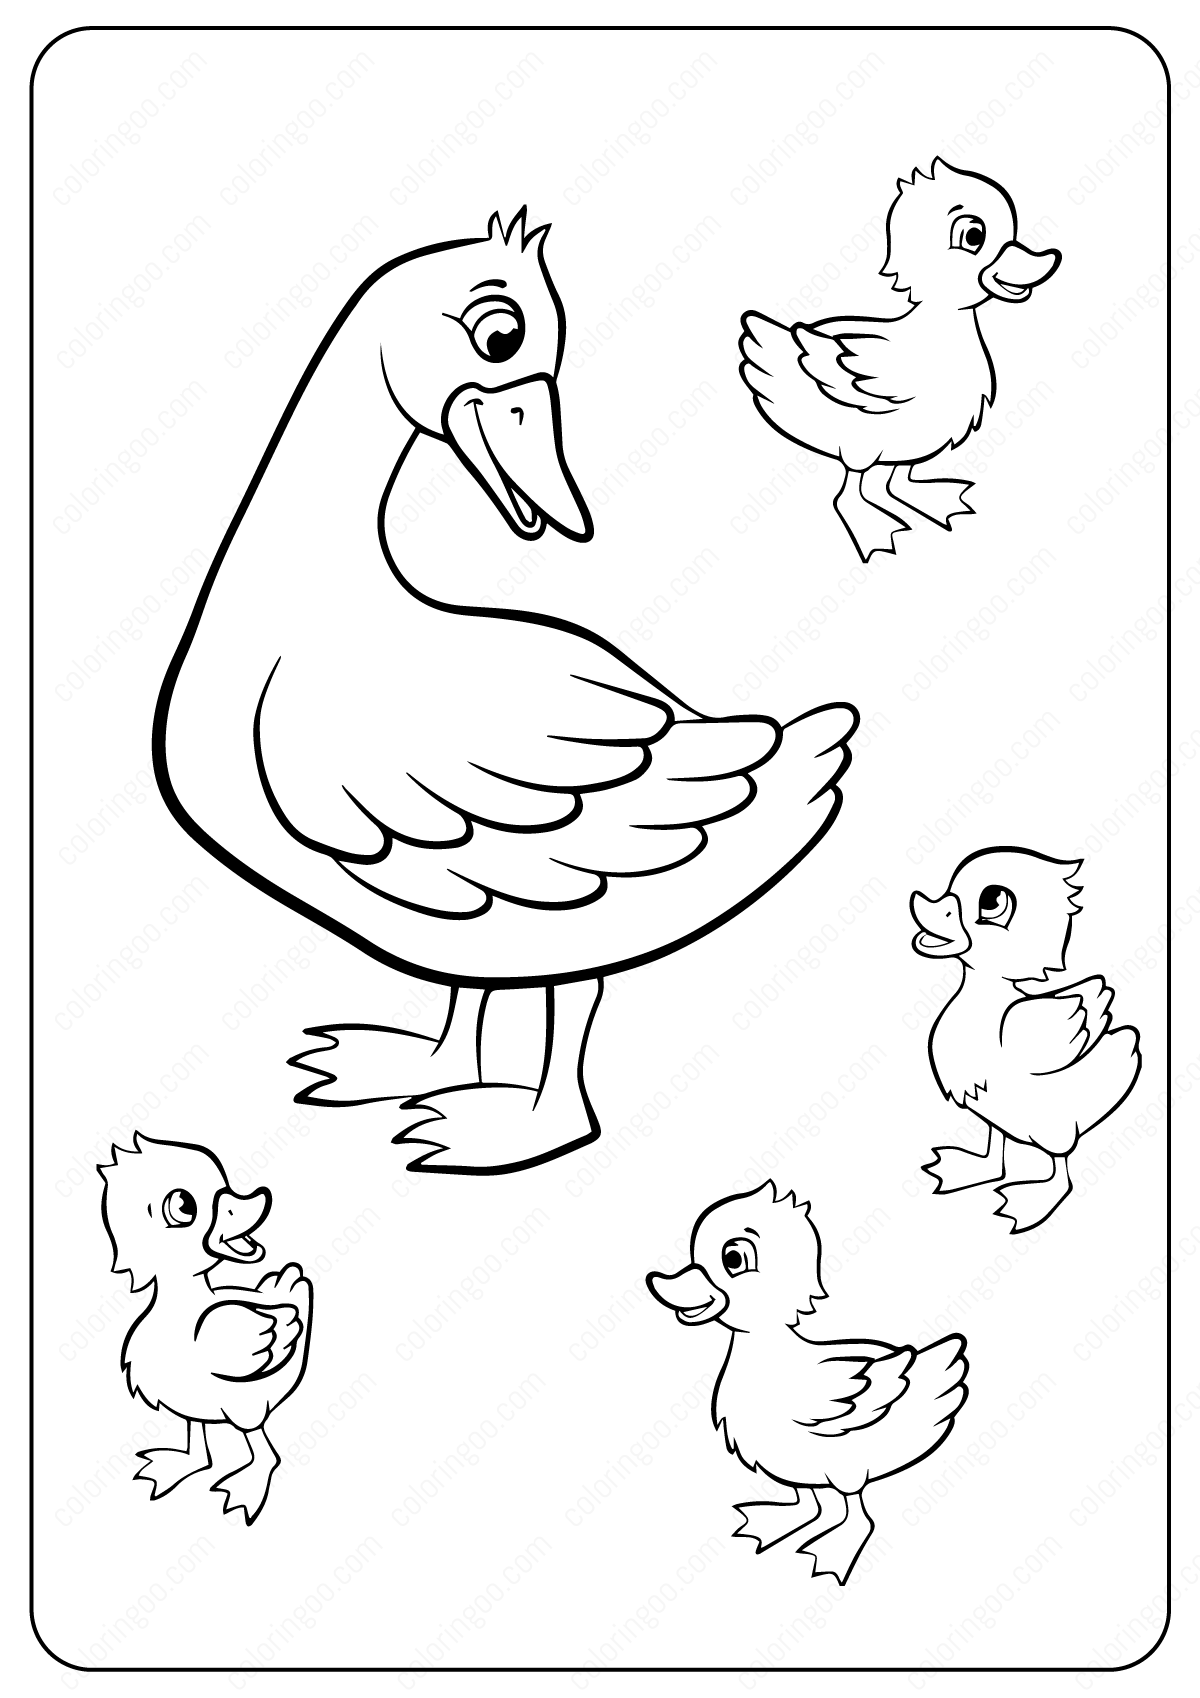 free printable duck coloring pages free easy to print duck coloring pages tulamama printable coloring pages free duck